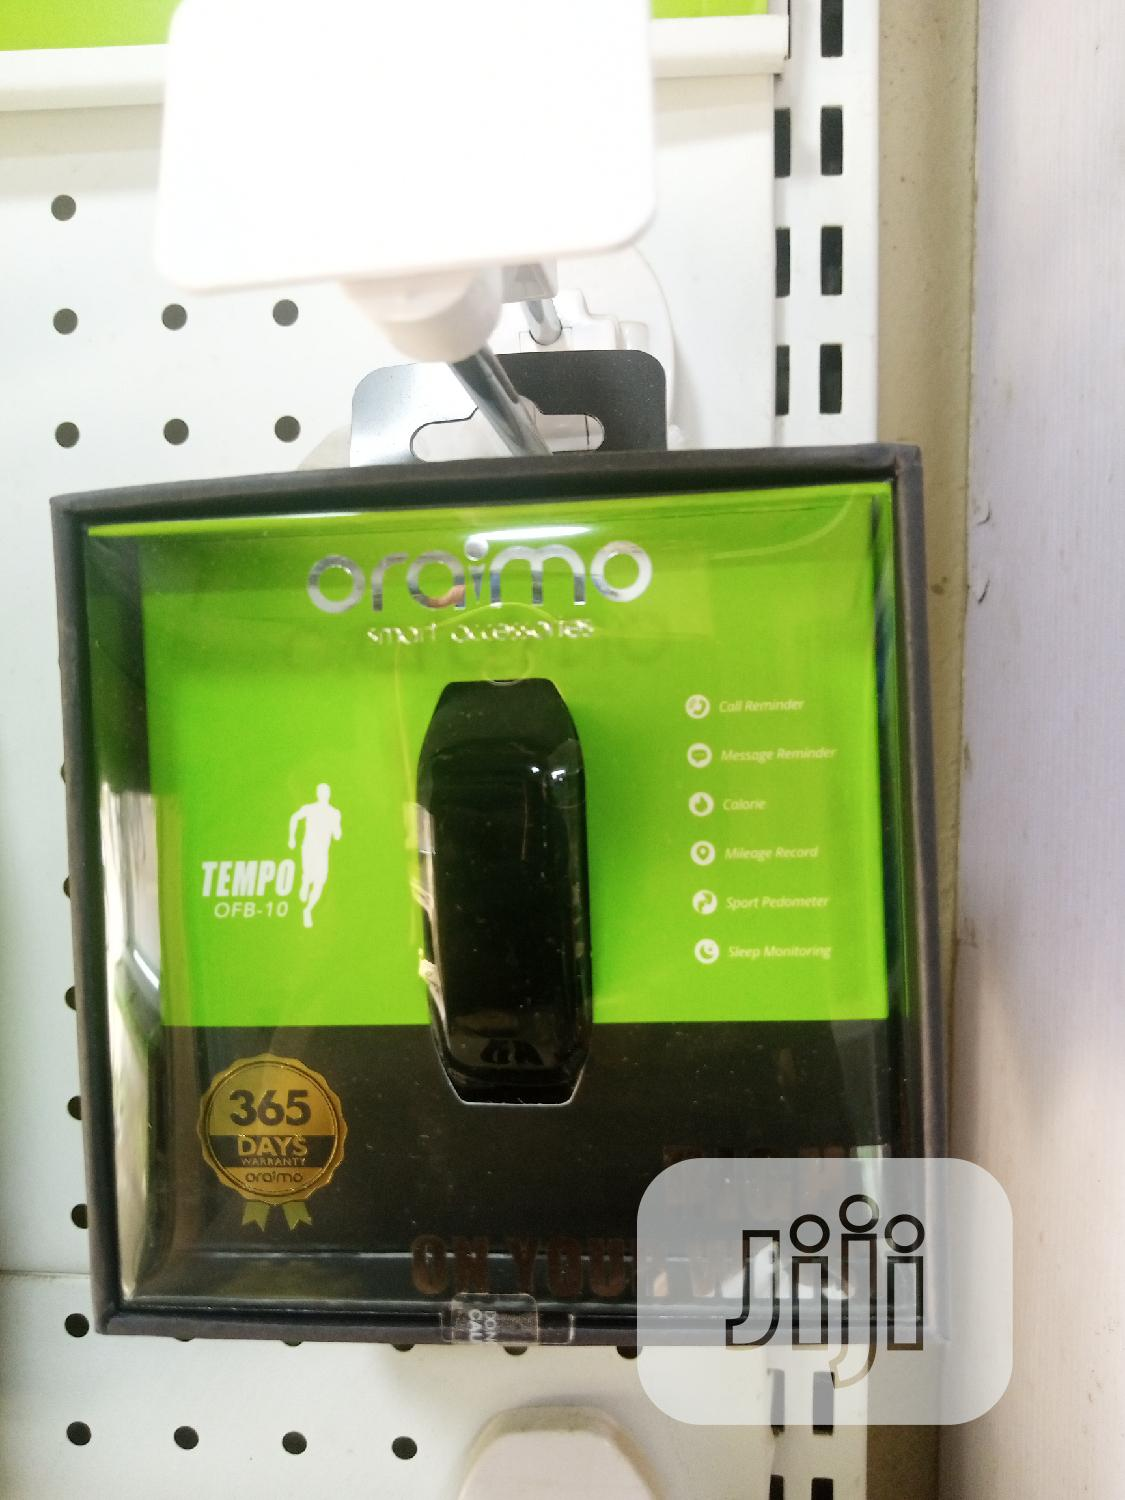 ORAIMO - Sport Bracelet   OFM-10   Smart Watches & Trackers for sale in Ikeja, Lagos State, Nigeria